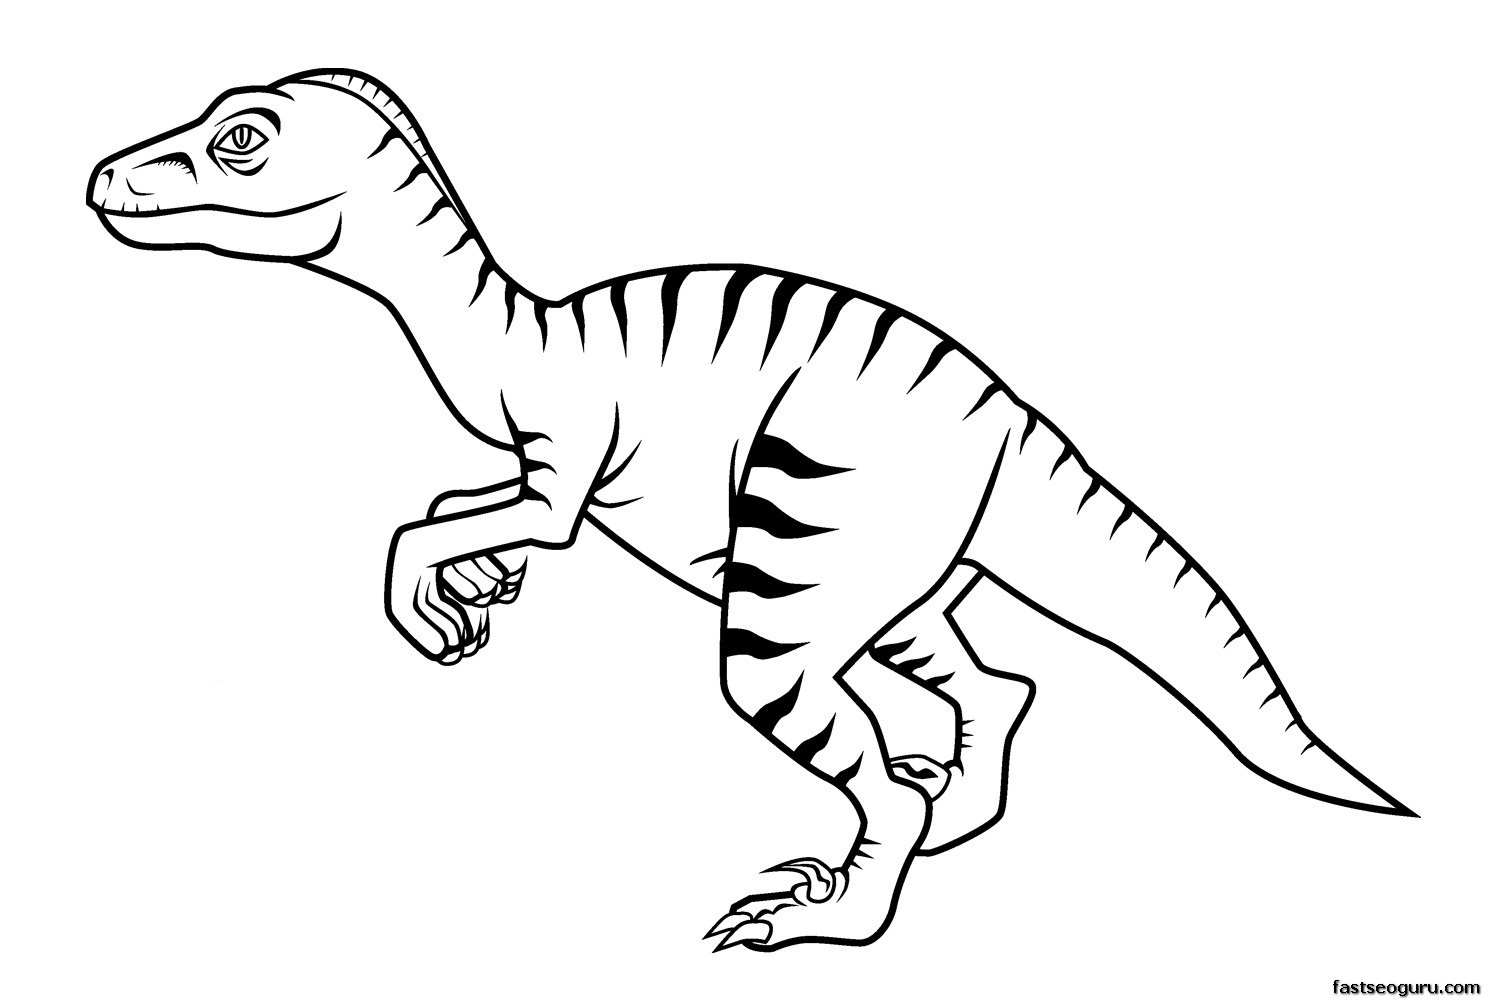 kids dinosaur coloring pages - photo#25